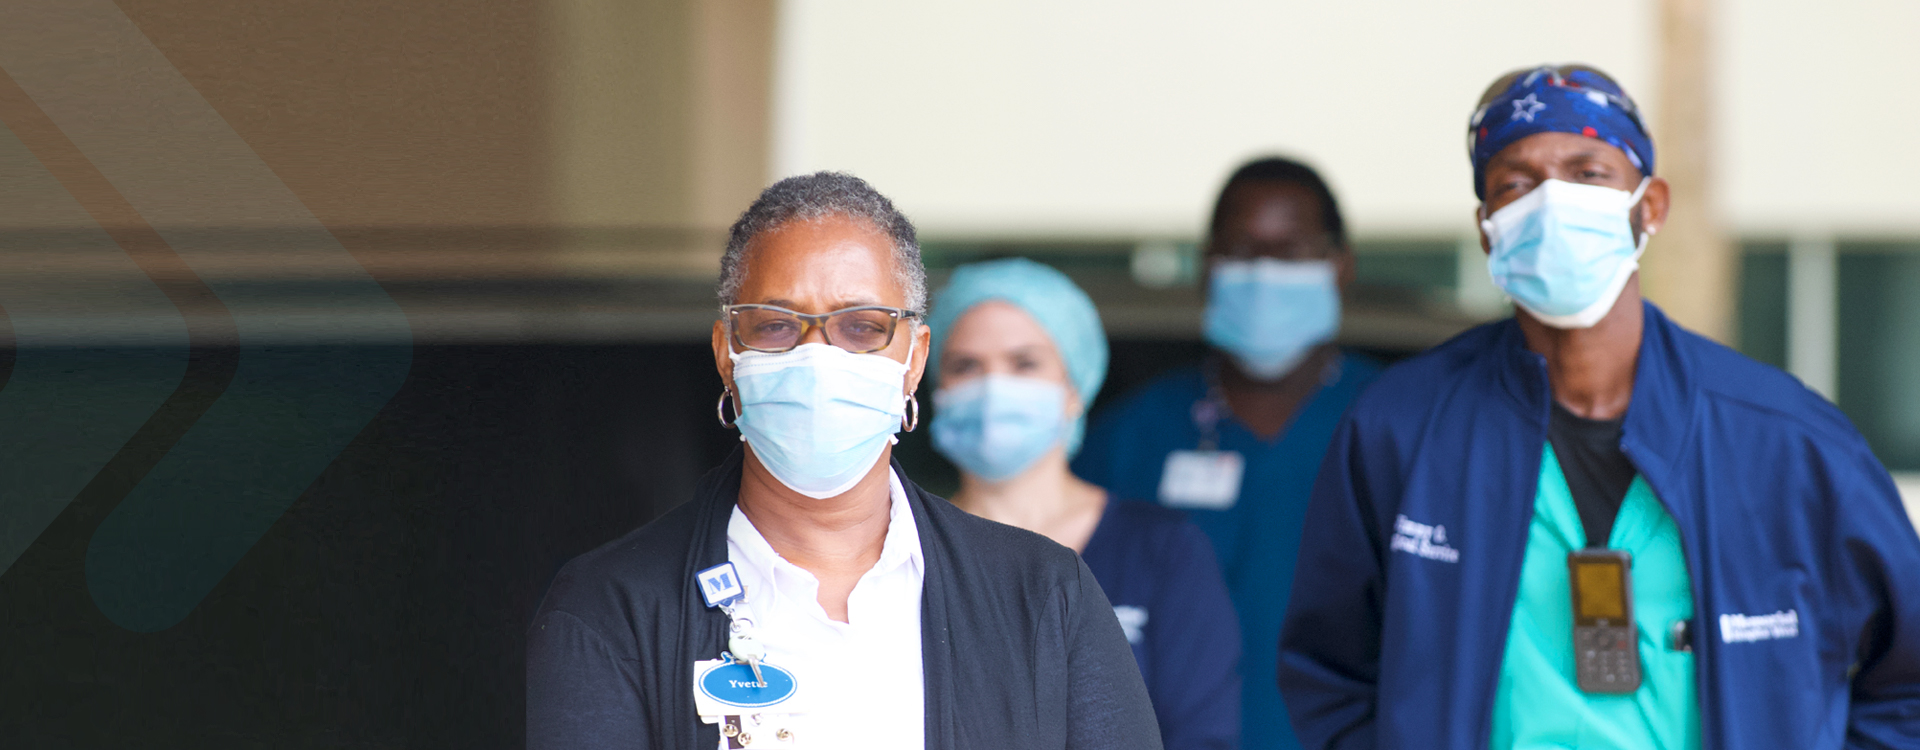 Healthcare workers wearing masks for safety